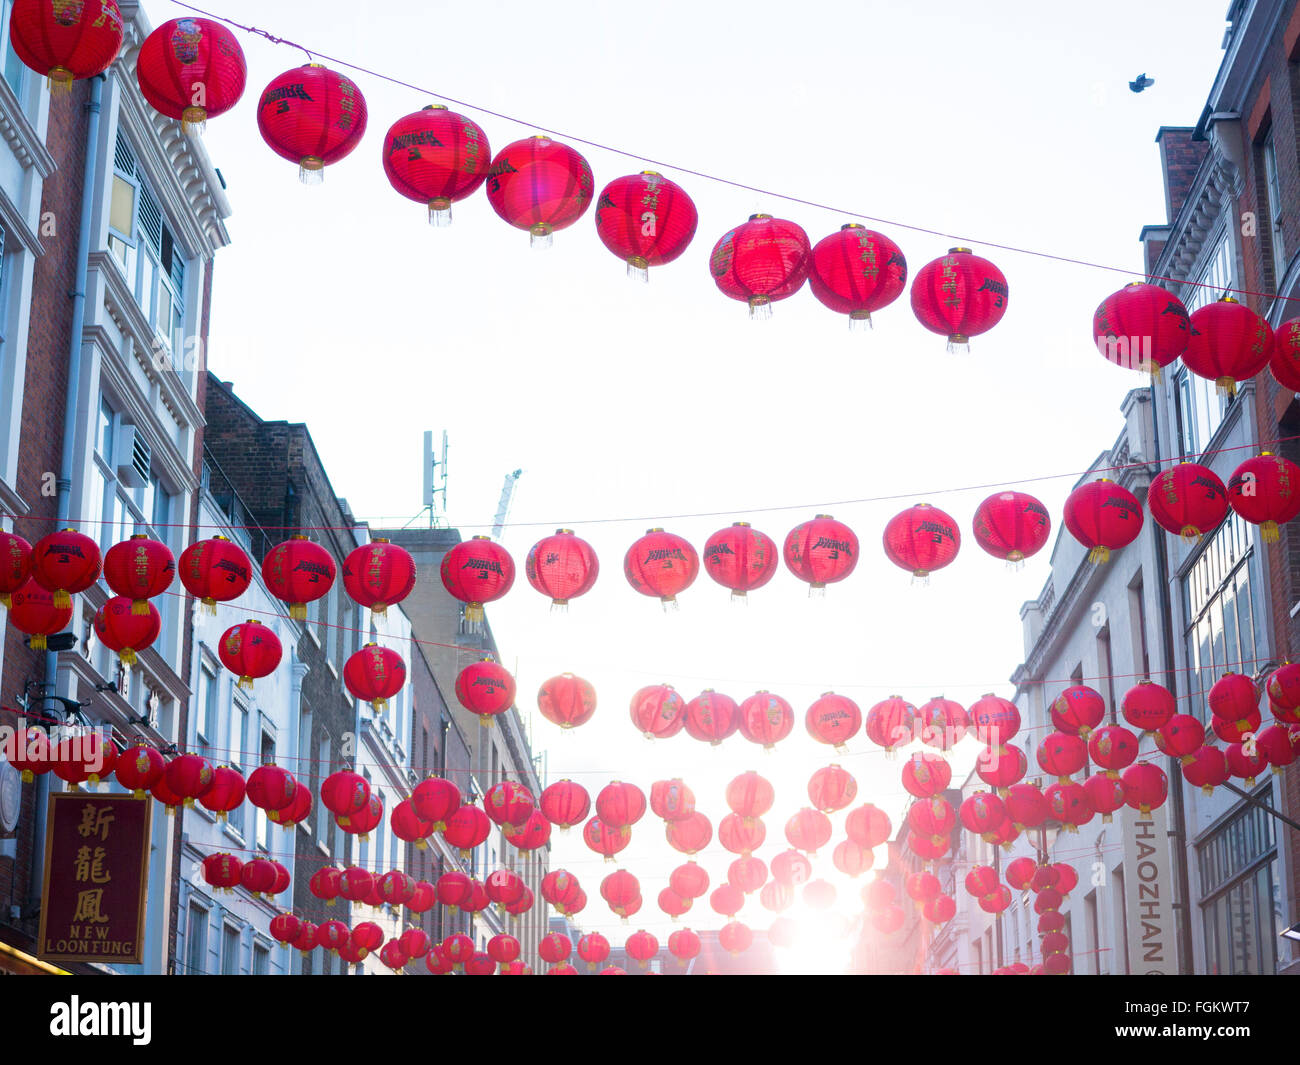 Lanterns from Chinese New Year in Chinatown - Stock Image